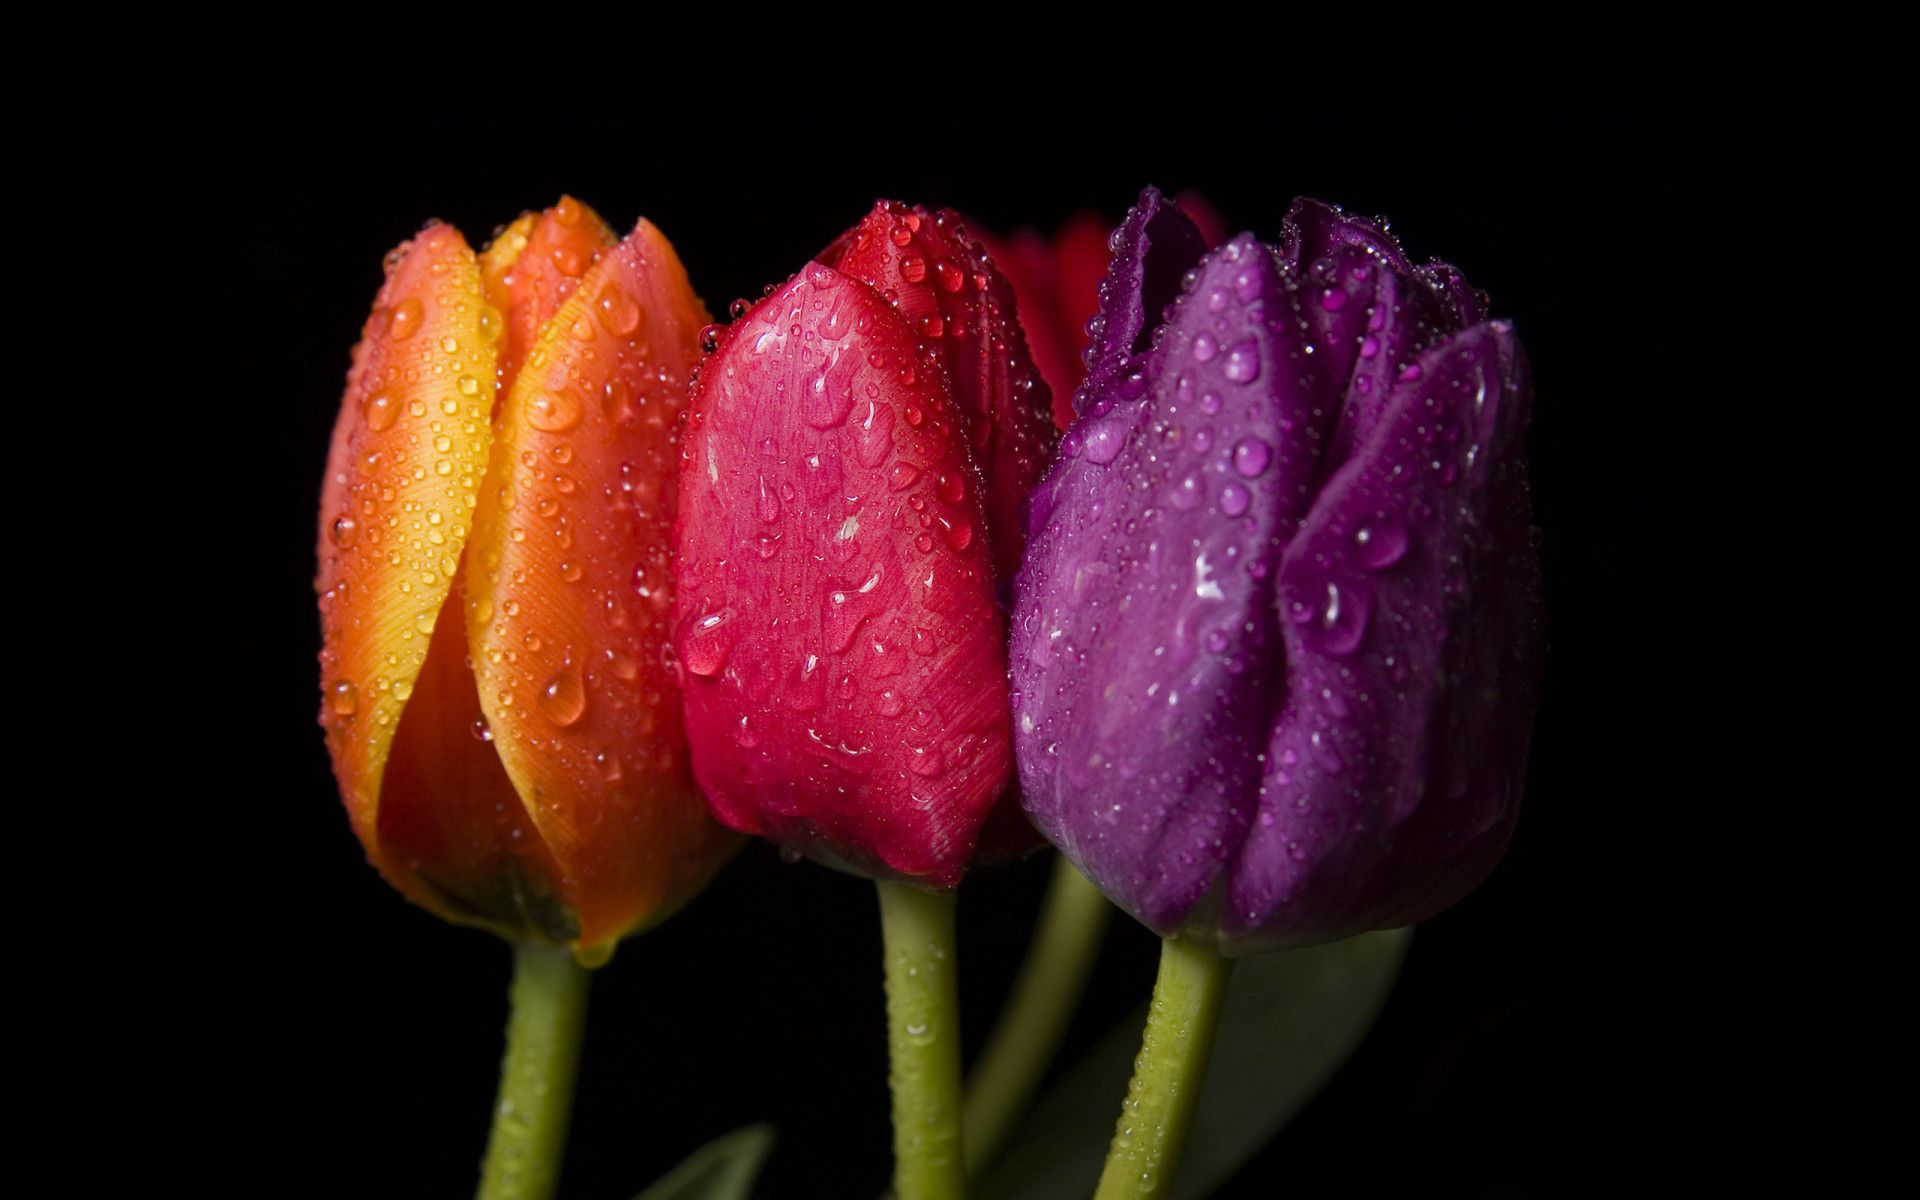 Hd colorful flowers wallpaper download free watercolor